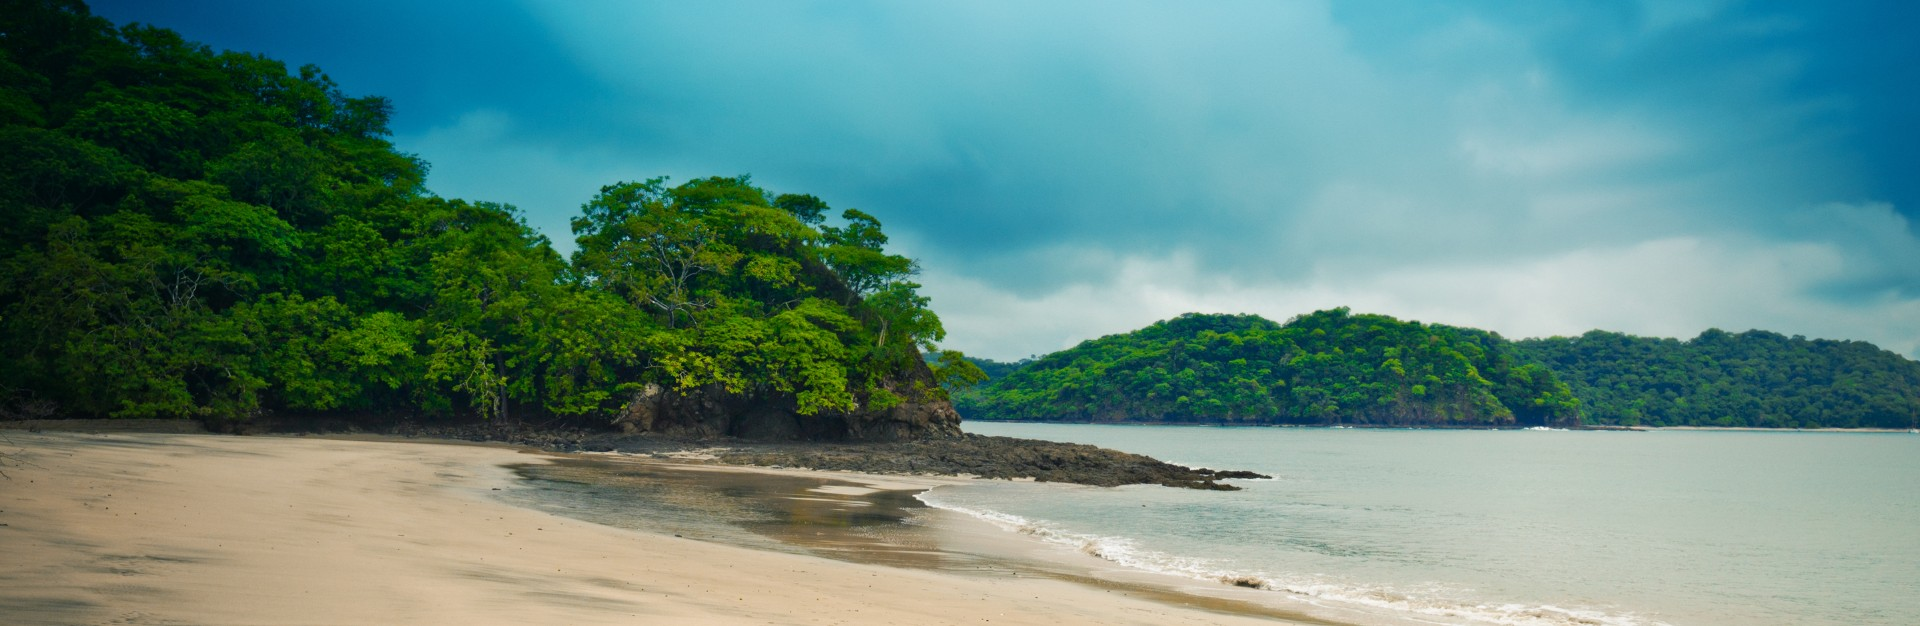 Costa Rica - Central America Luxury Travel -